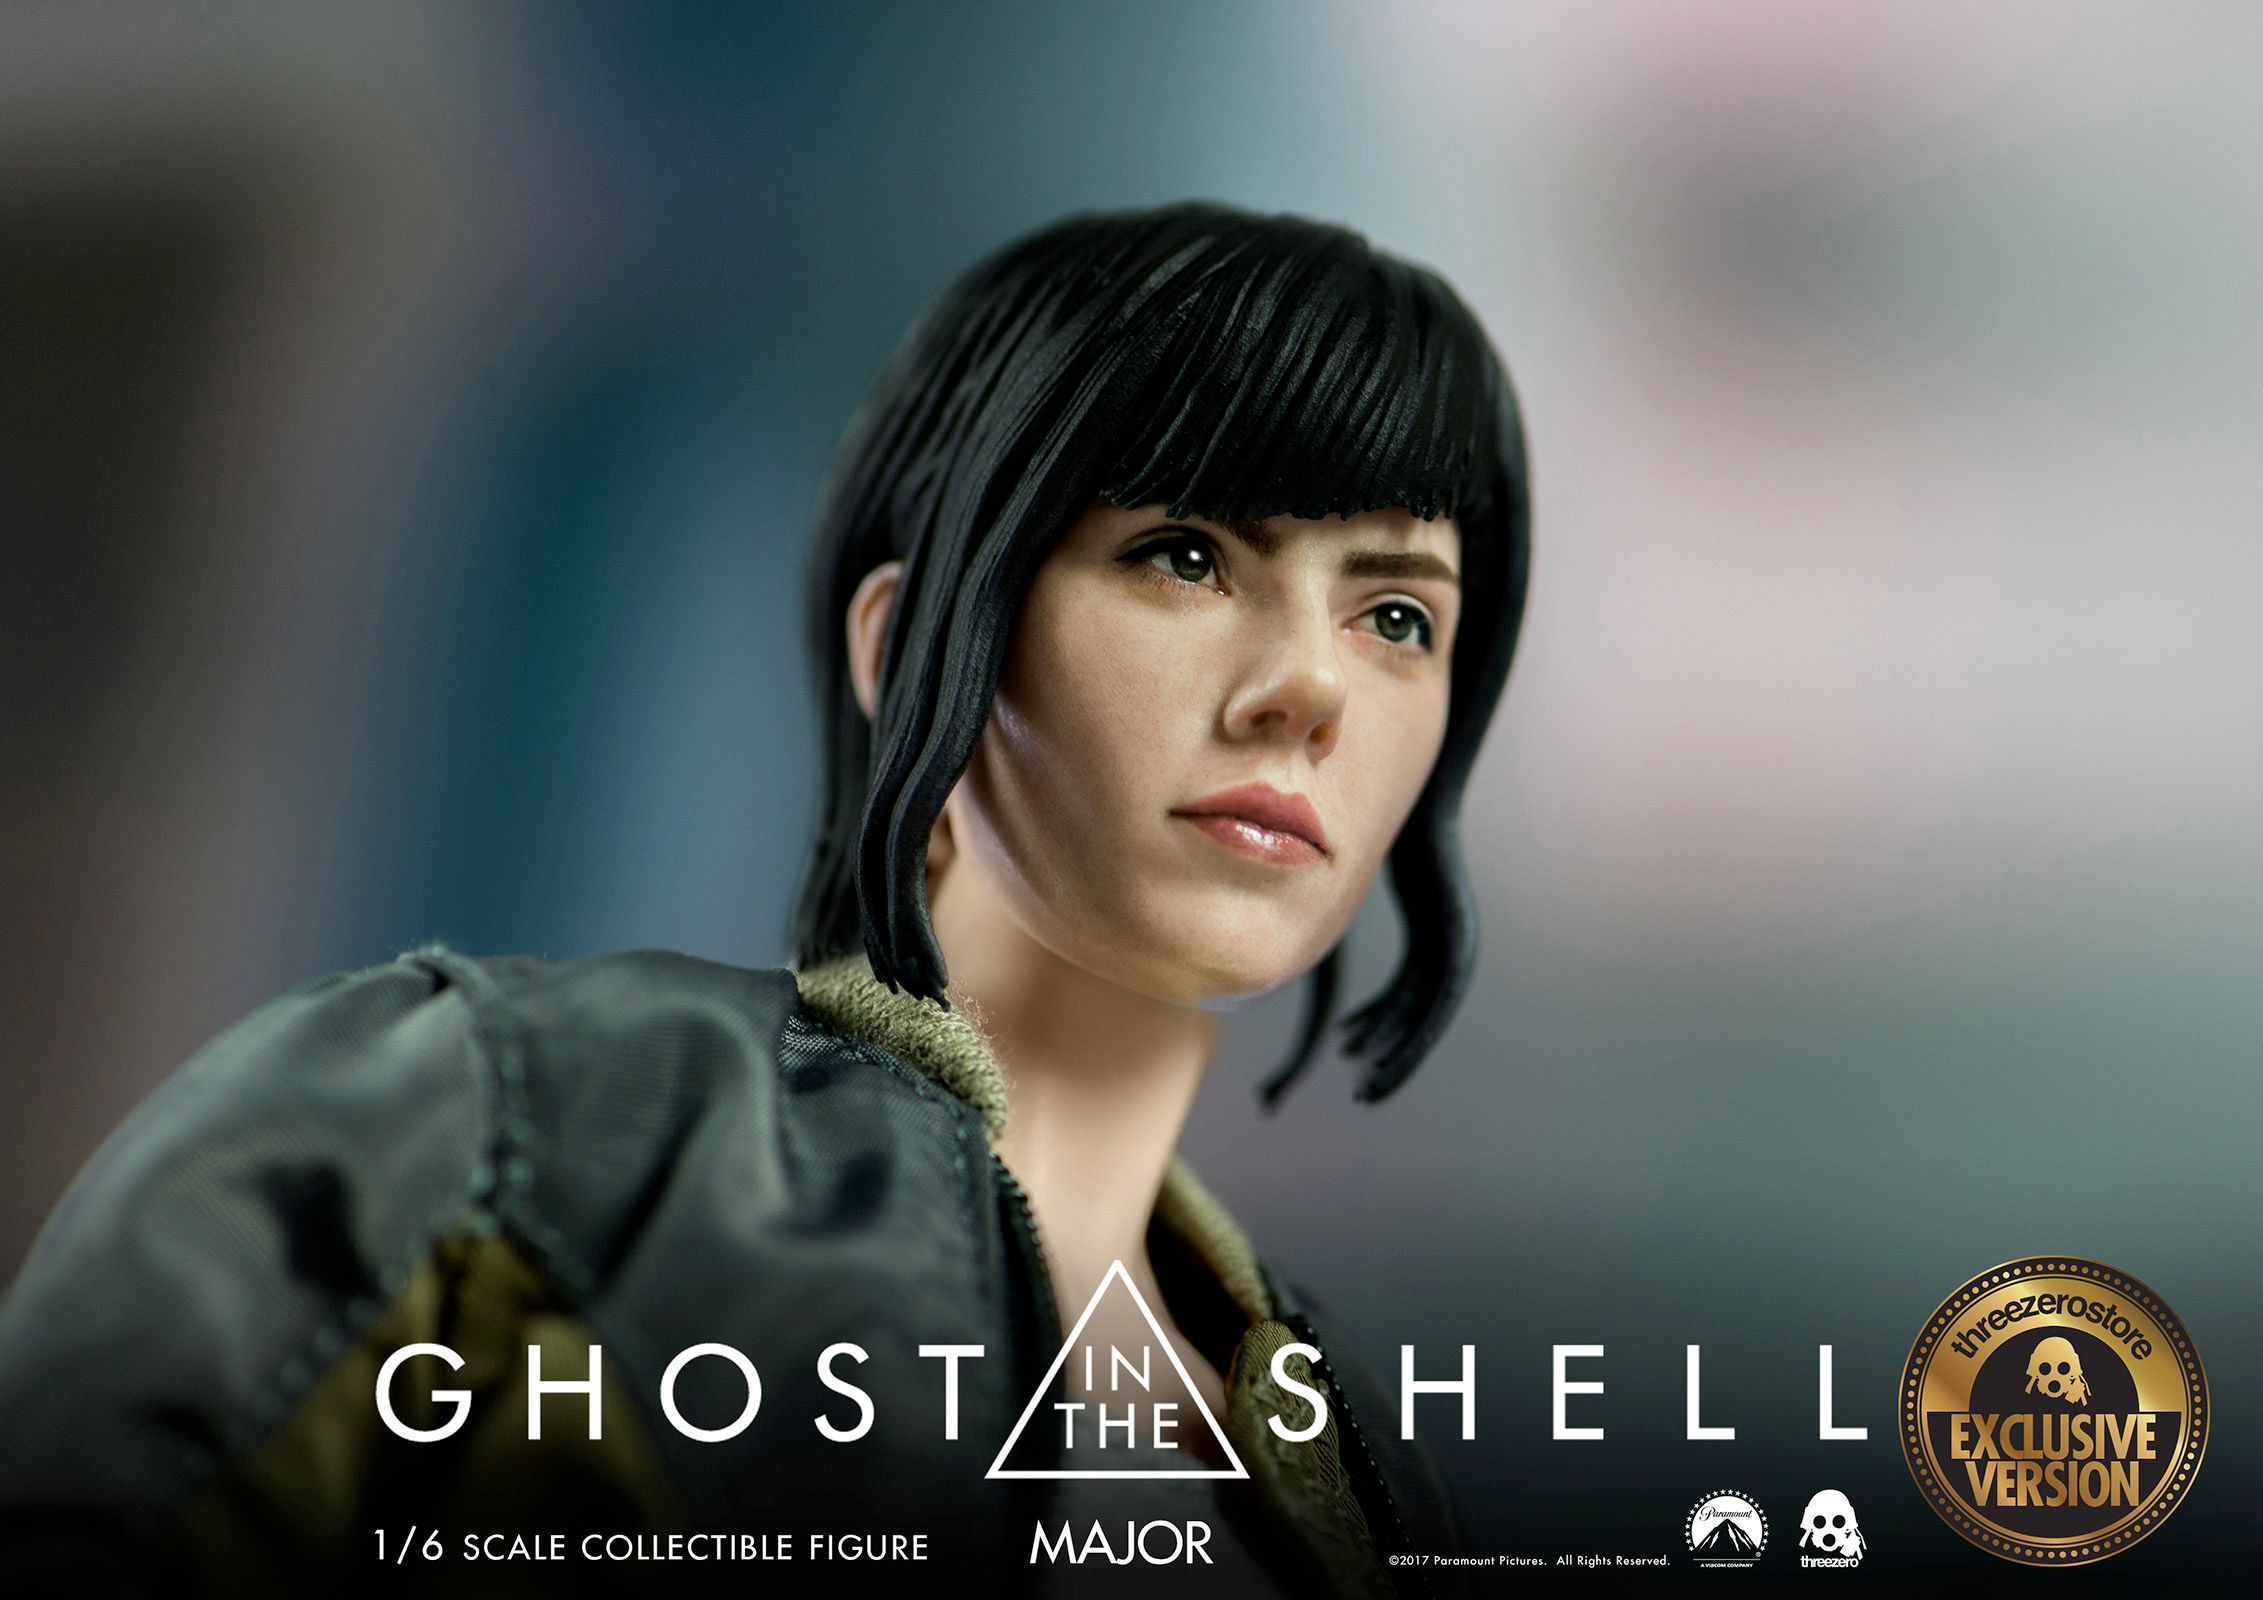 Ghost-In-The-Shell-MAJOR-Collectible-Action-Figure-12